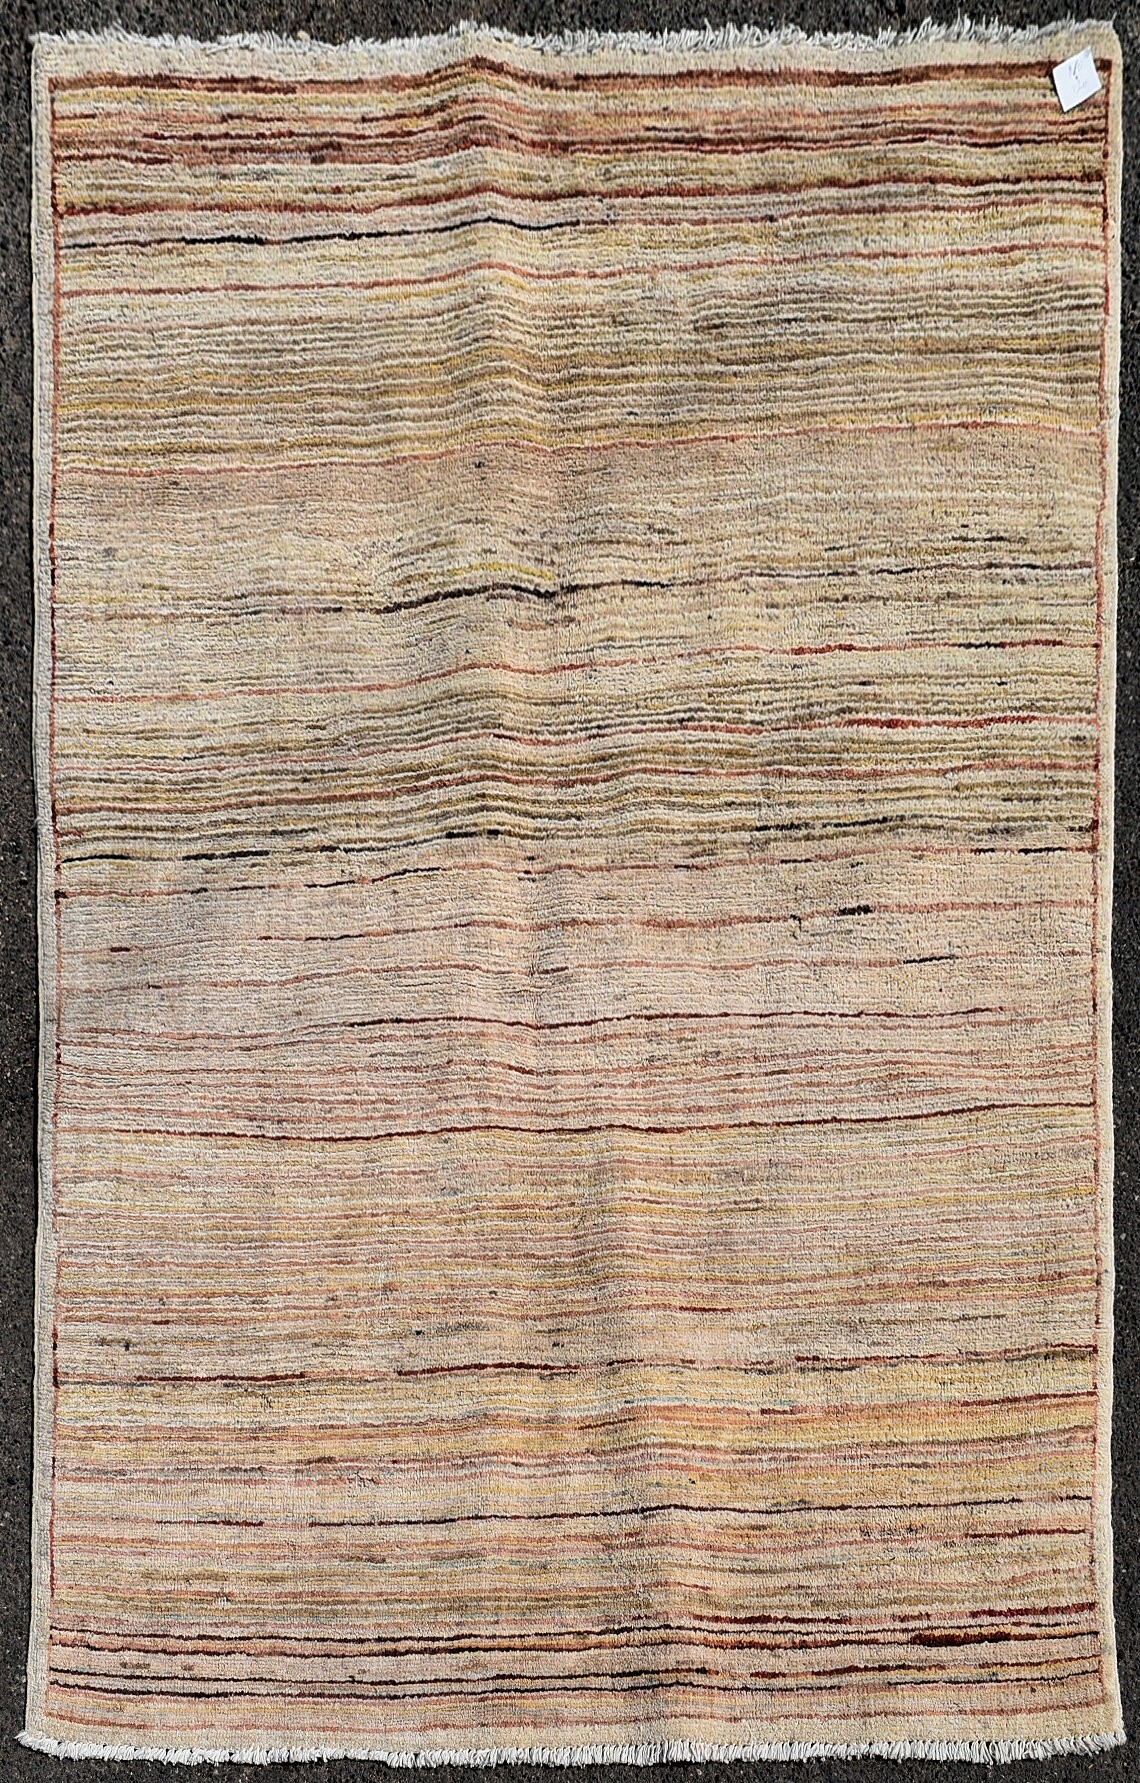 A modern rug with cross weave in hues of red and beige L.140xW.100cm